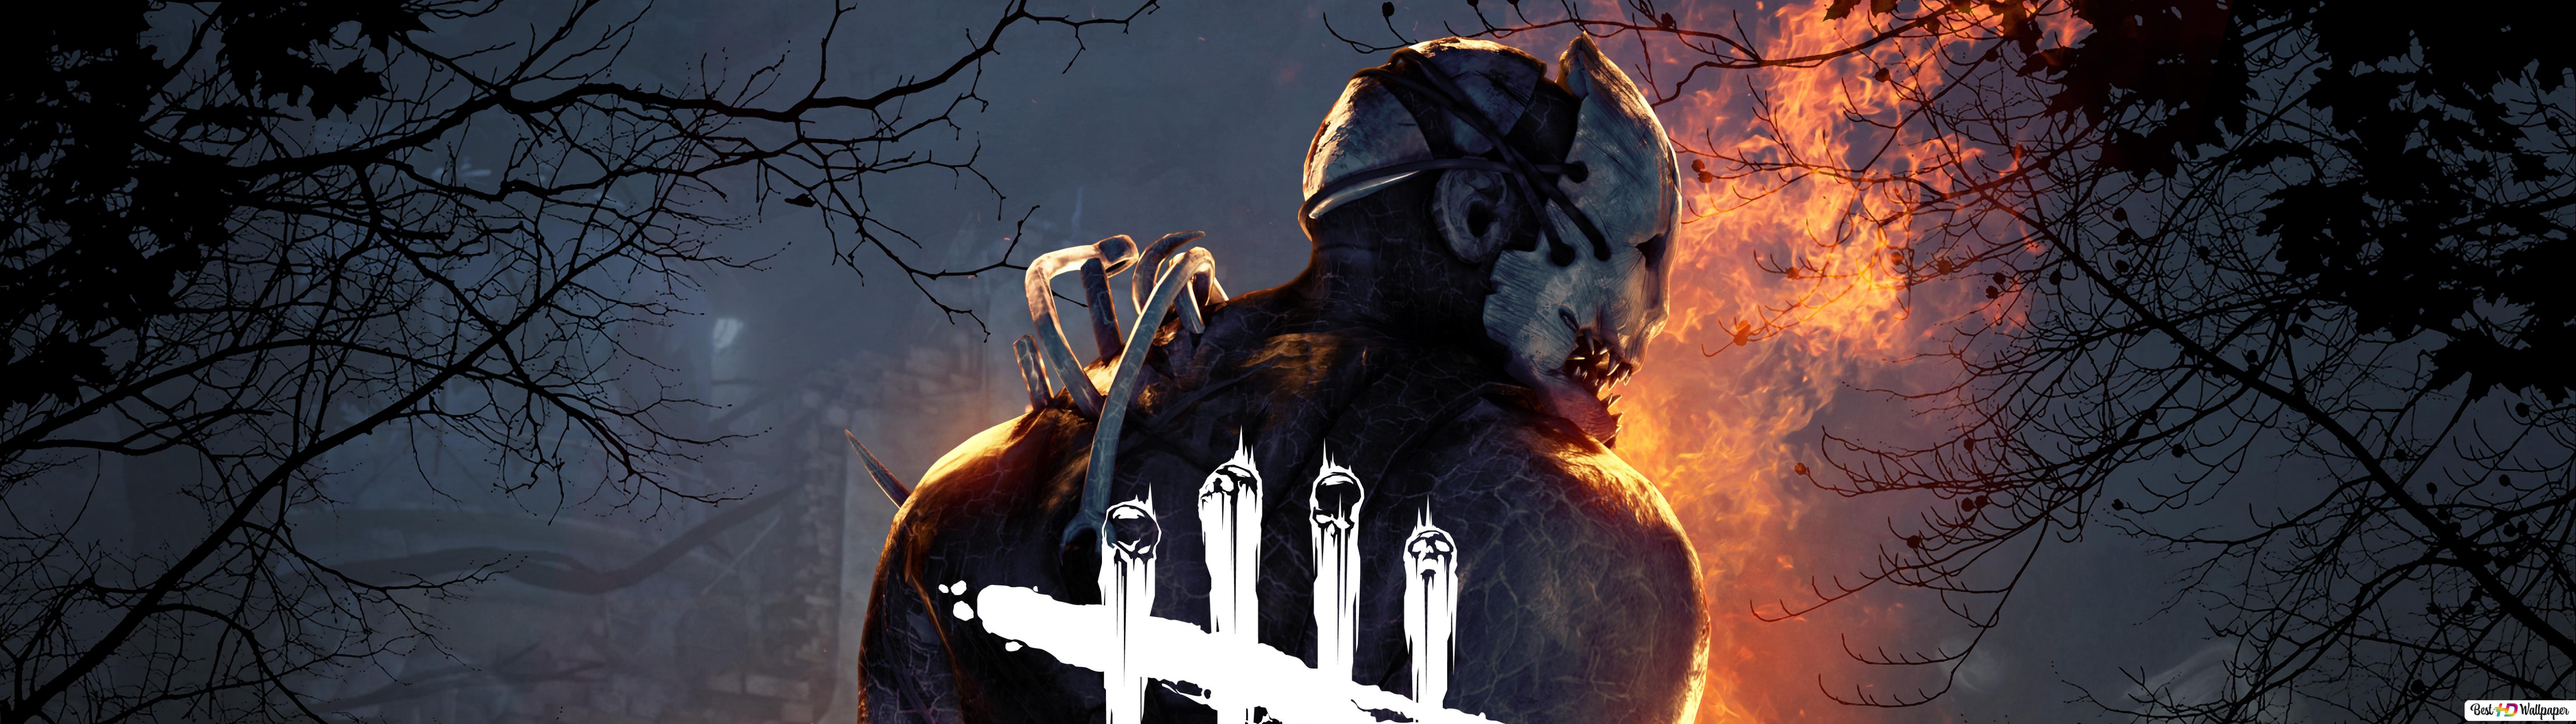 Dead By Daylight Video Game Hd Wallpaper Download